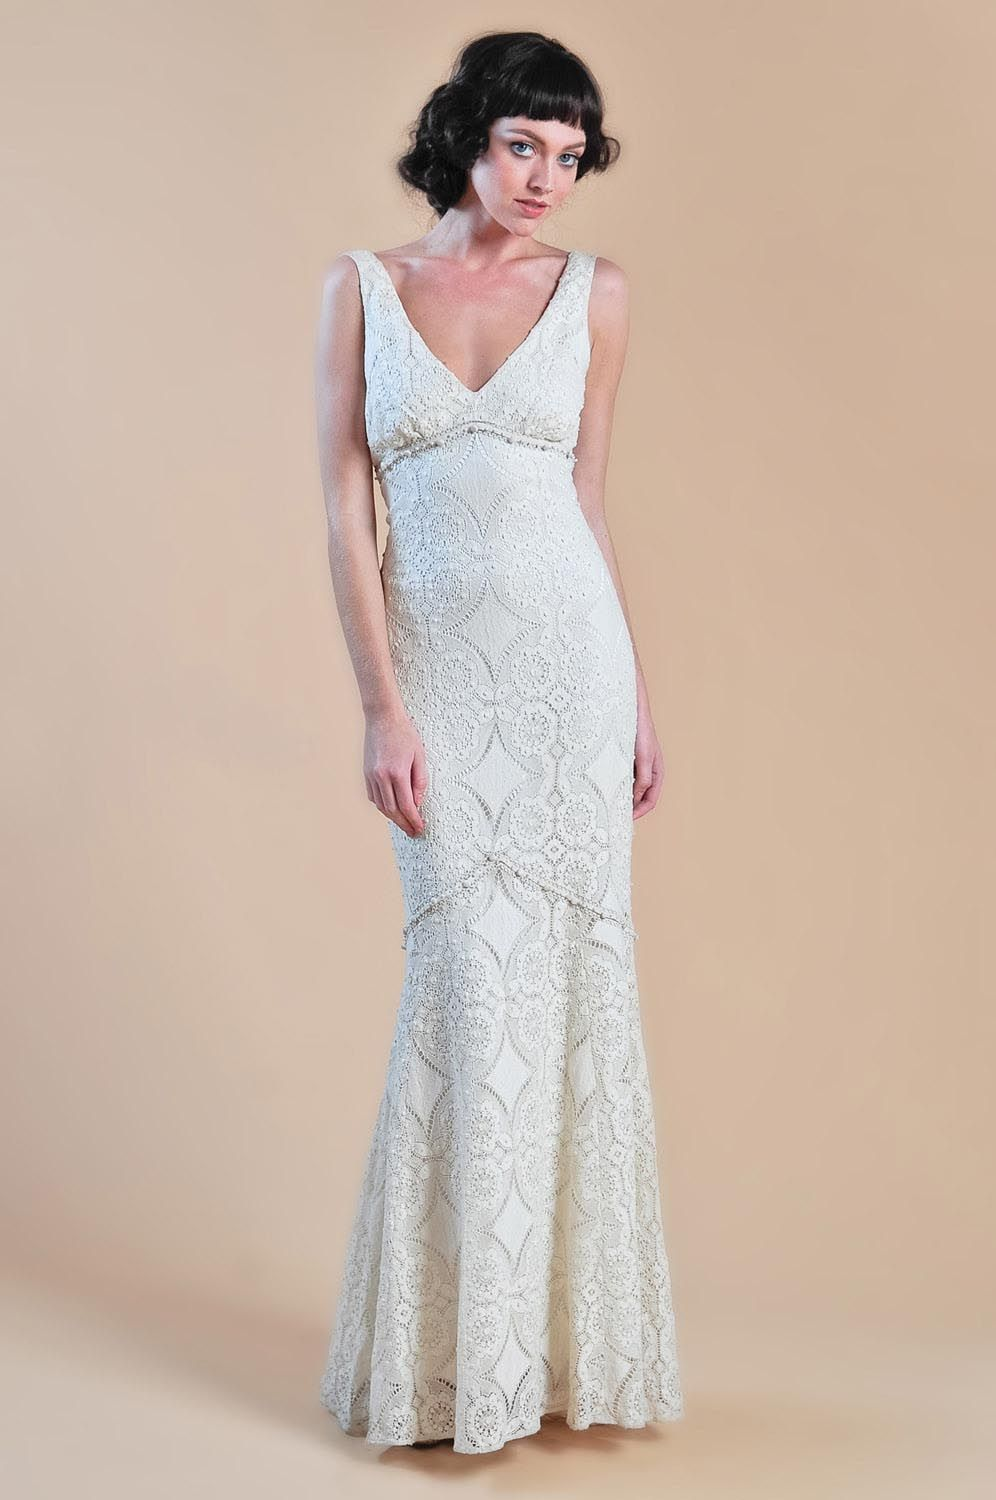 MADELEINE - Ivory cotton lace mermaid gown with grosgrain ...